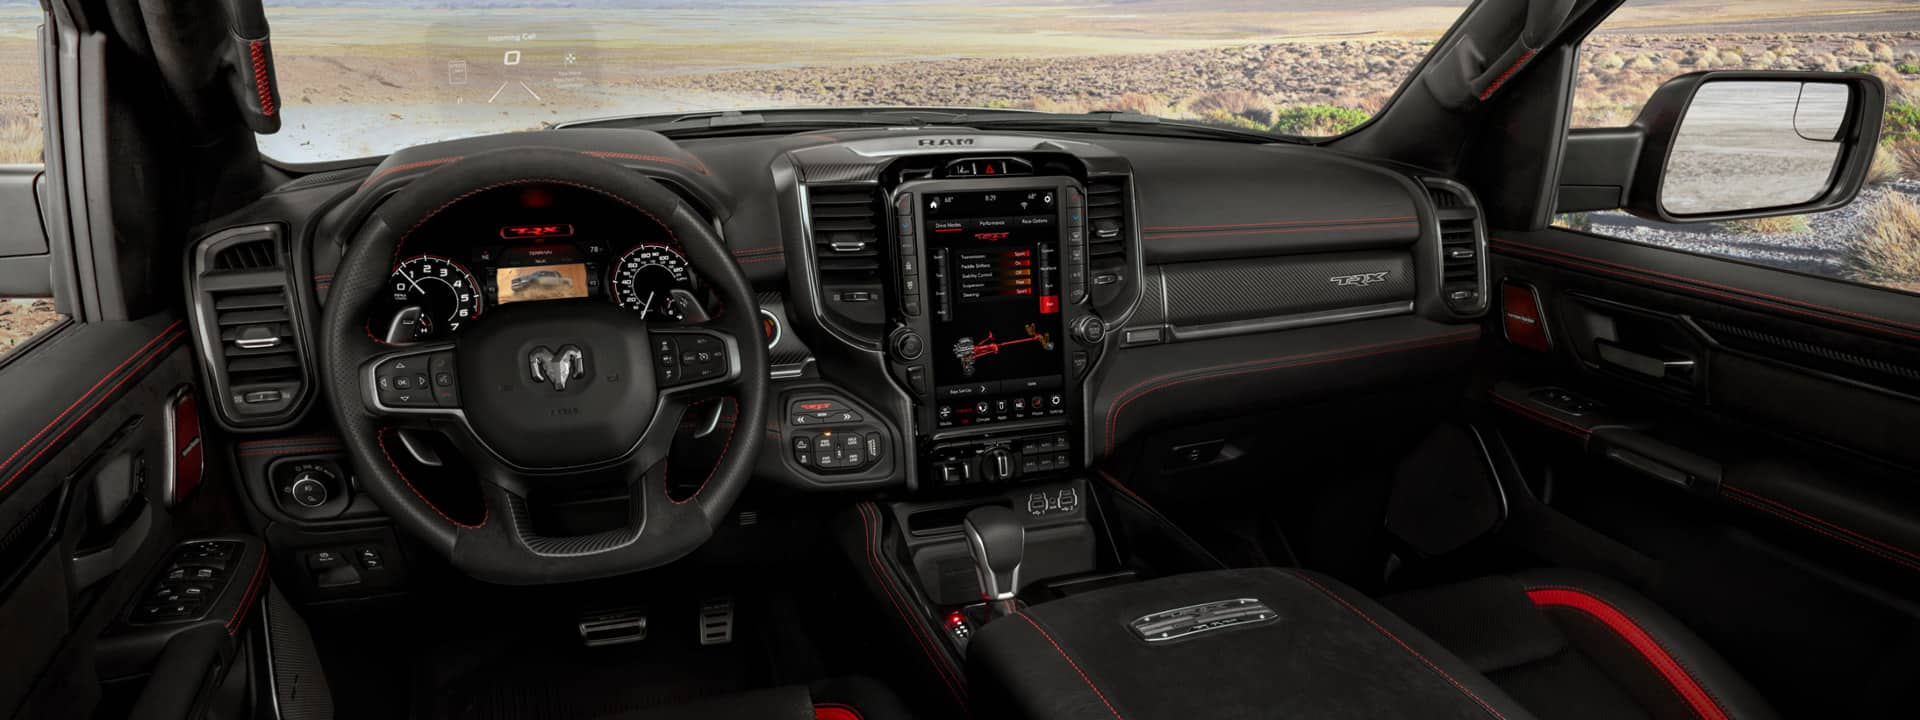 Interior shot from the perspective of the driver seat in the 2021 Ram 1500 TRX showcasing premium interior materials and technology.